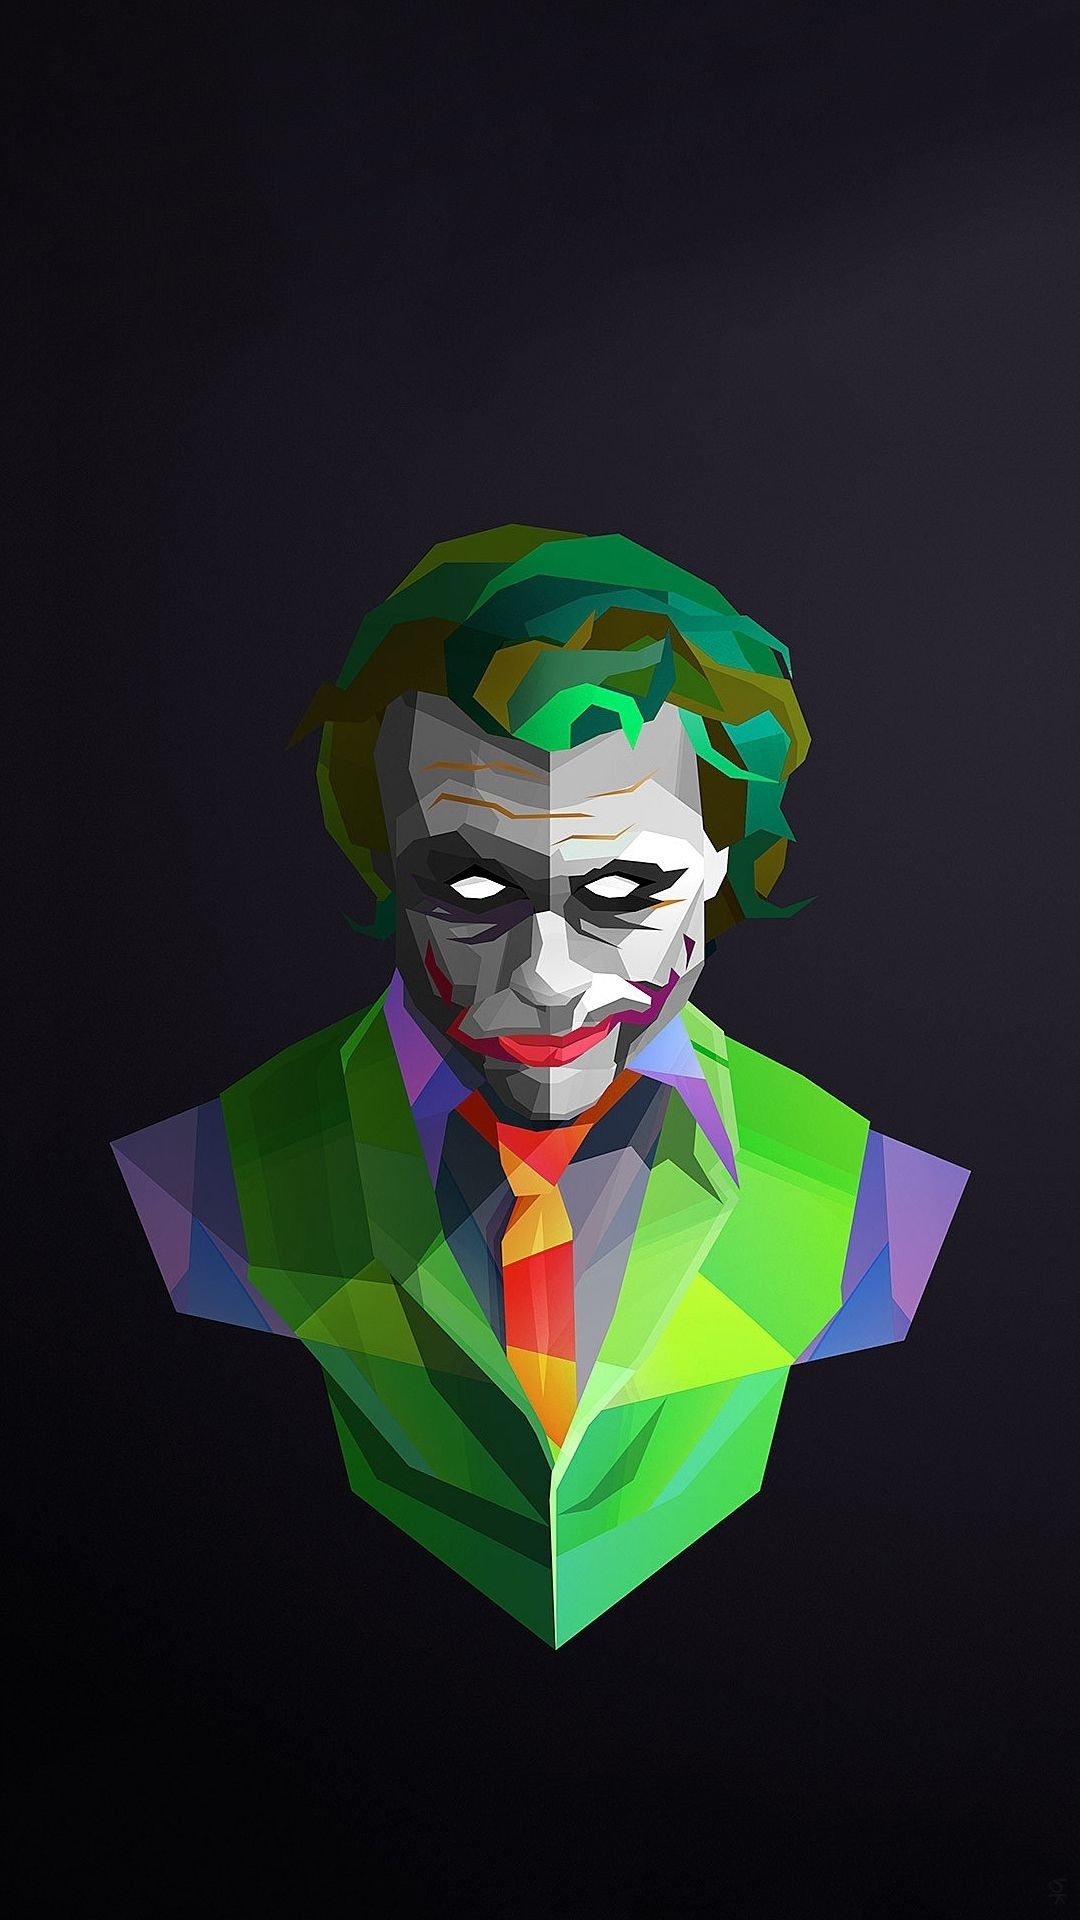 joker wallpaper iphone 6 plus - download popular joker wallpaper